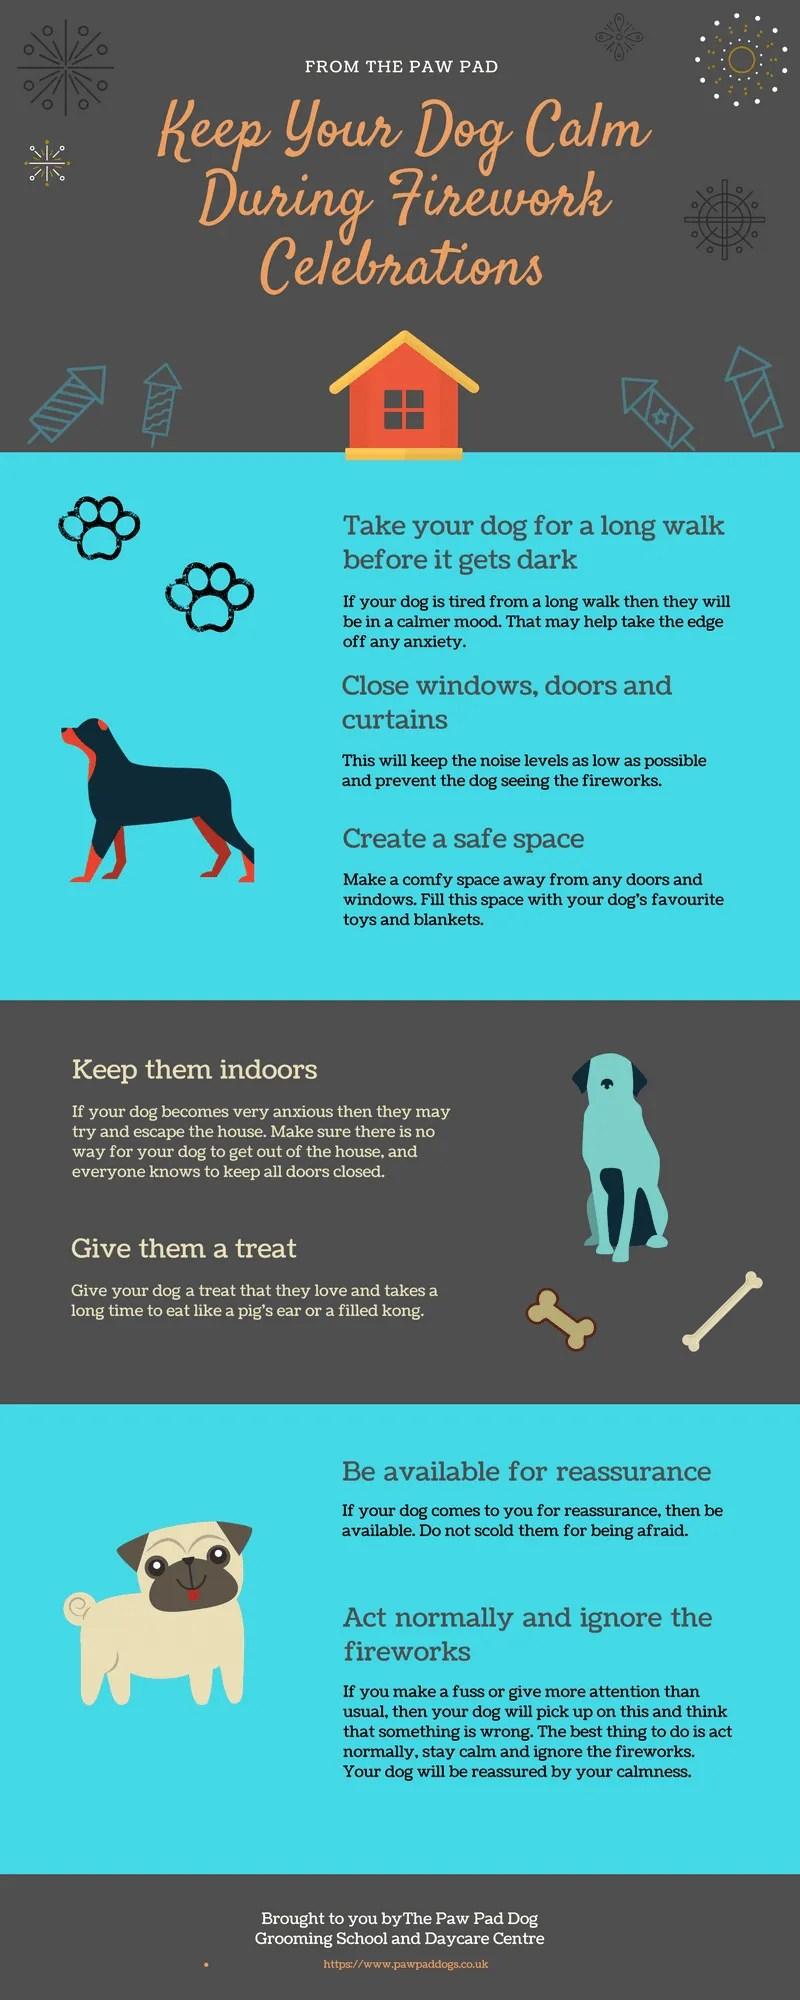 Keep Dogs Calm During Firework Celebrations Infographic